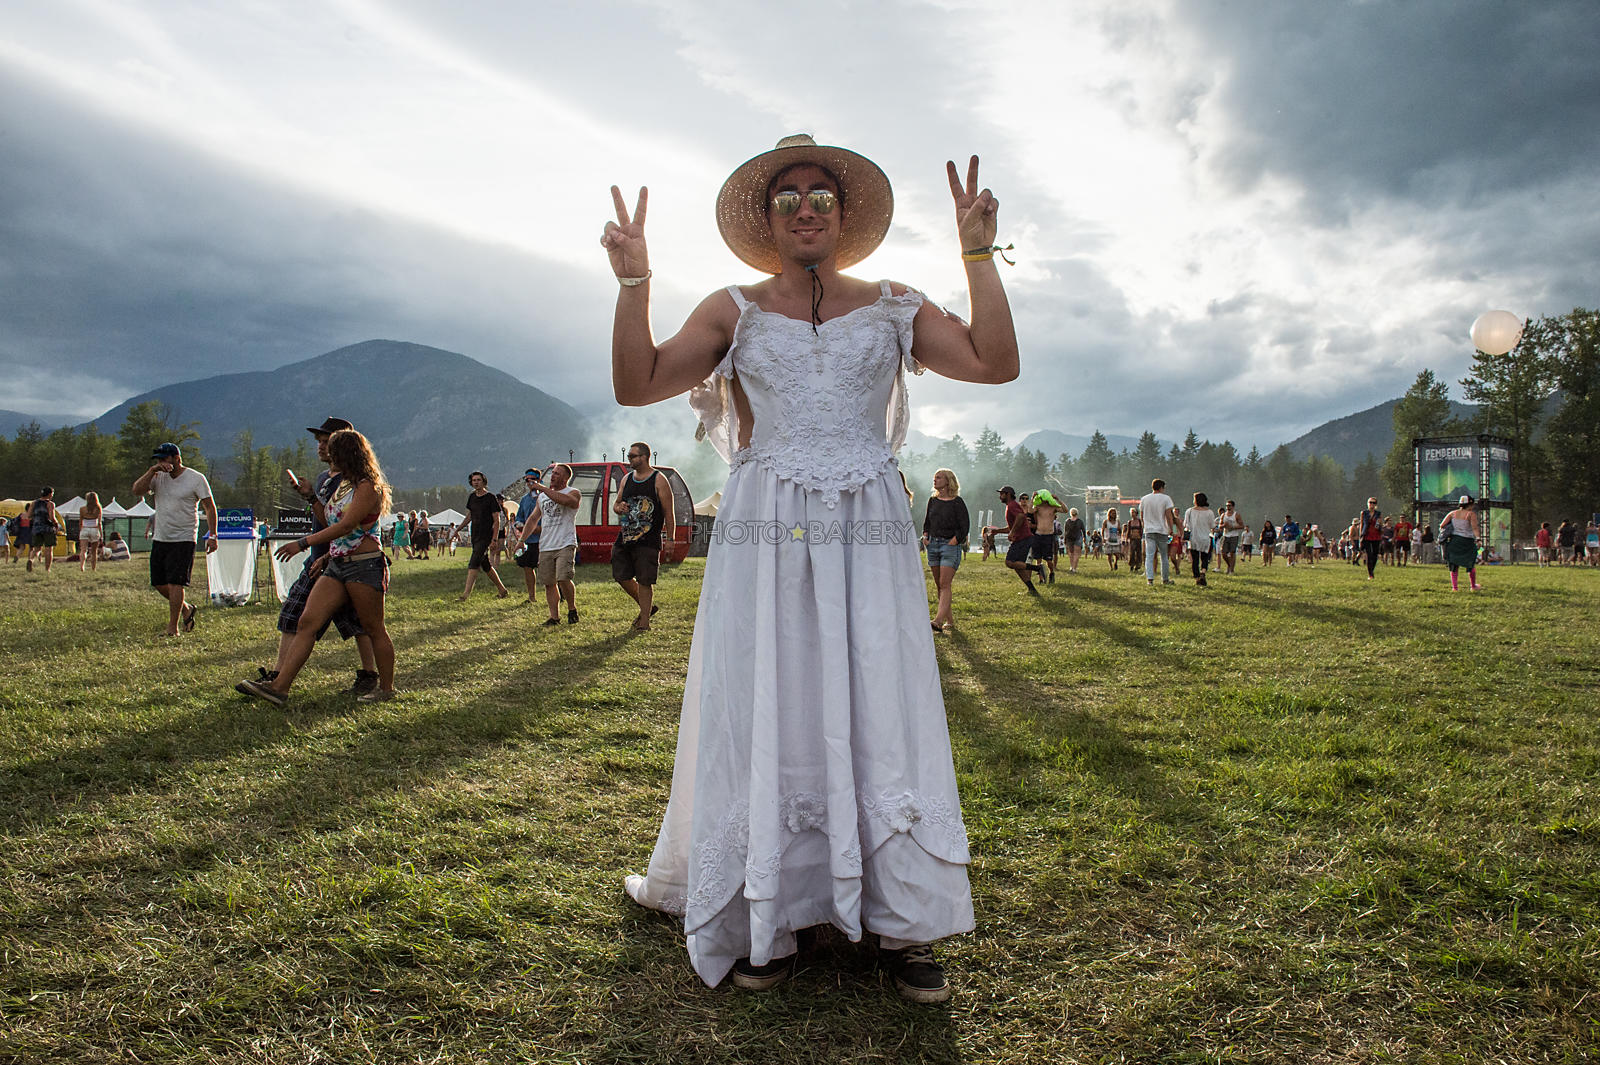 20140718-pemberton.people-001